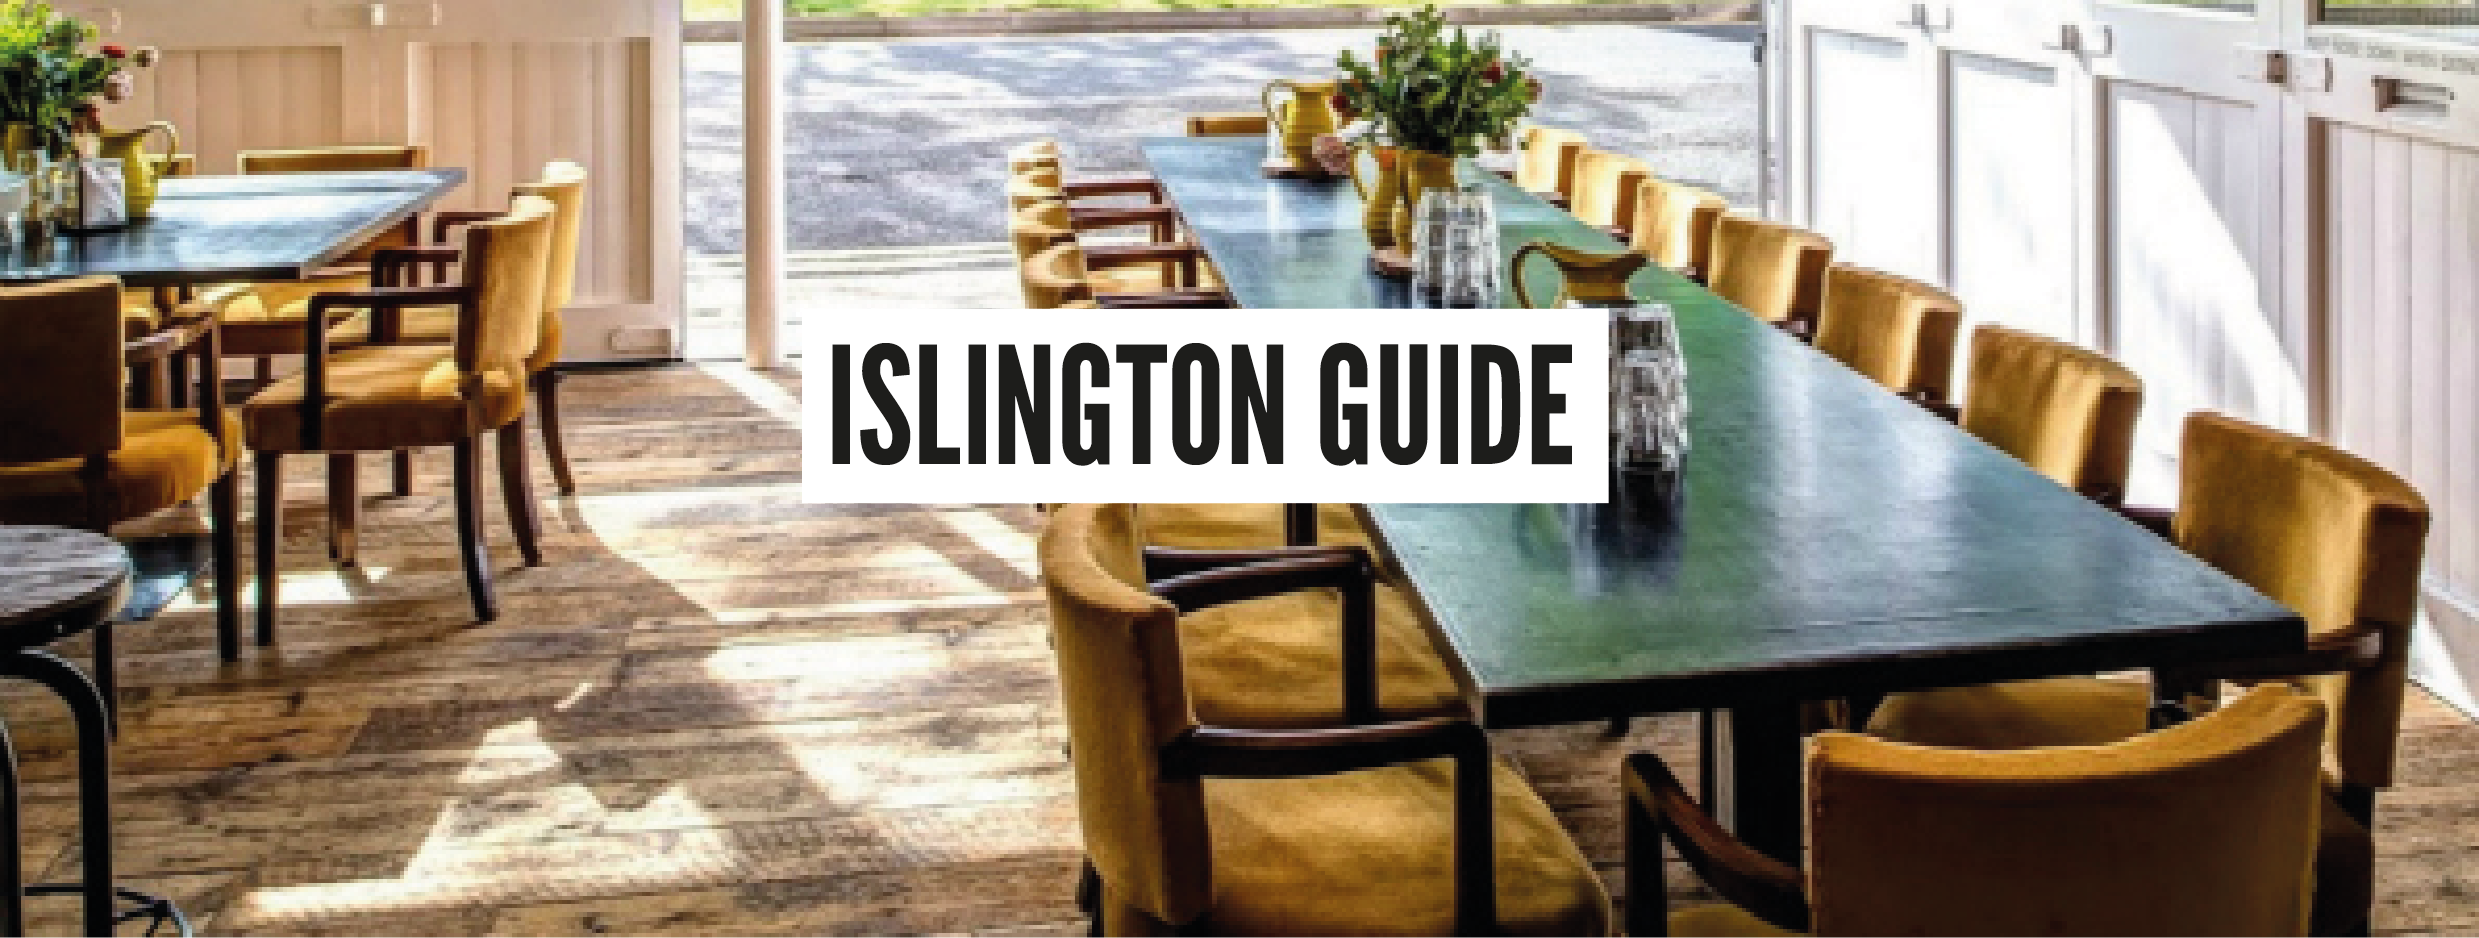 London Neighbourhood Guides - Islington